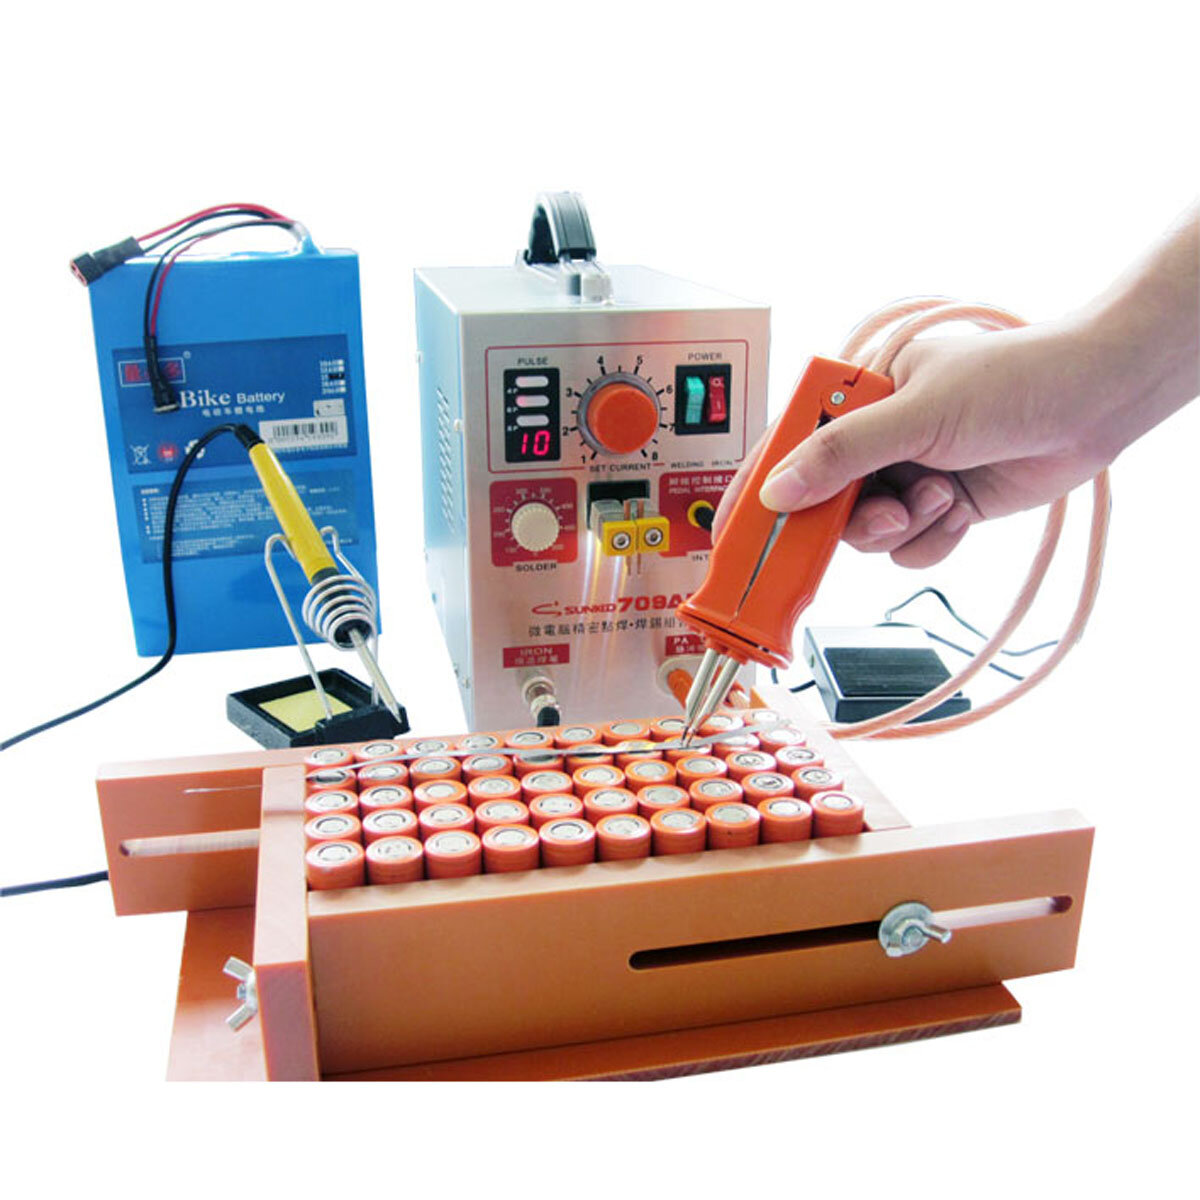 SUNKKO 709AD 2.2KW 110V/220V Spot Welder High Power Battery Digital Mobile Soldering Welding Machine 18650 Pulse Spot Weld